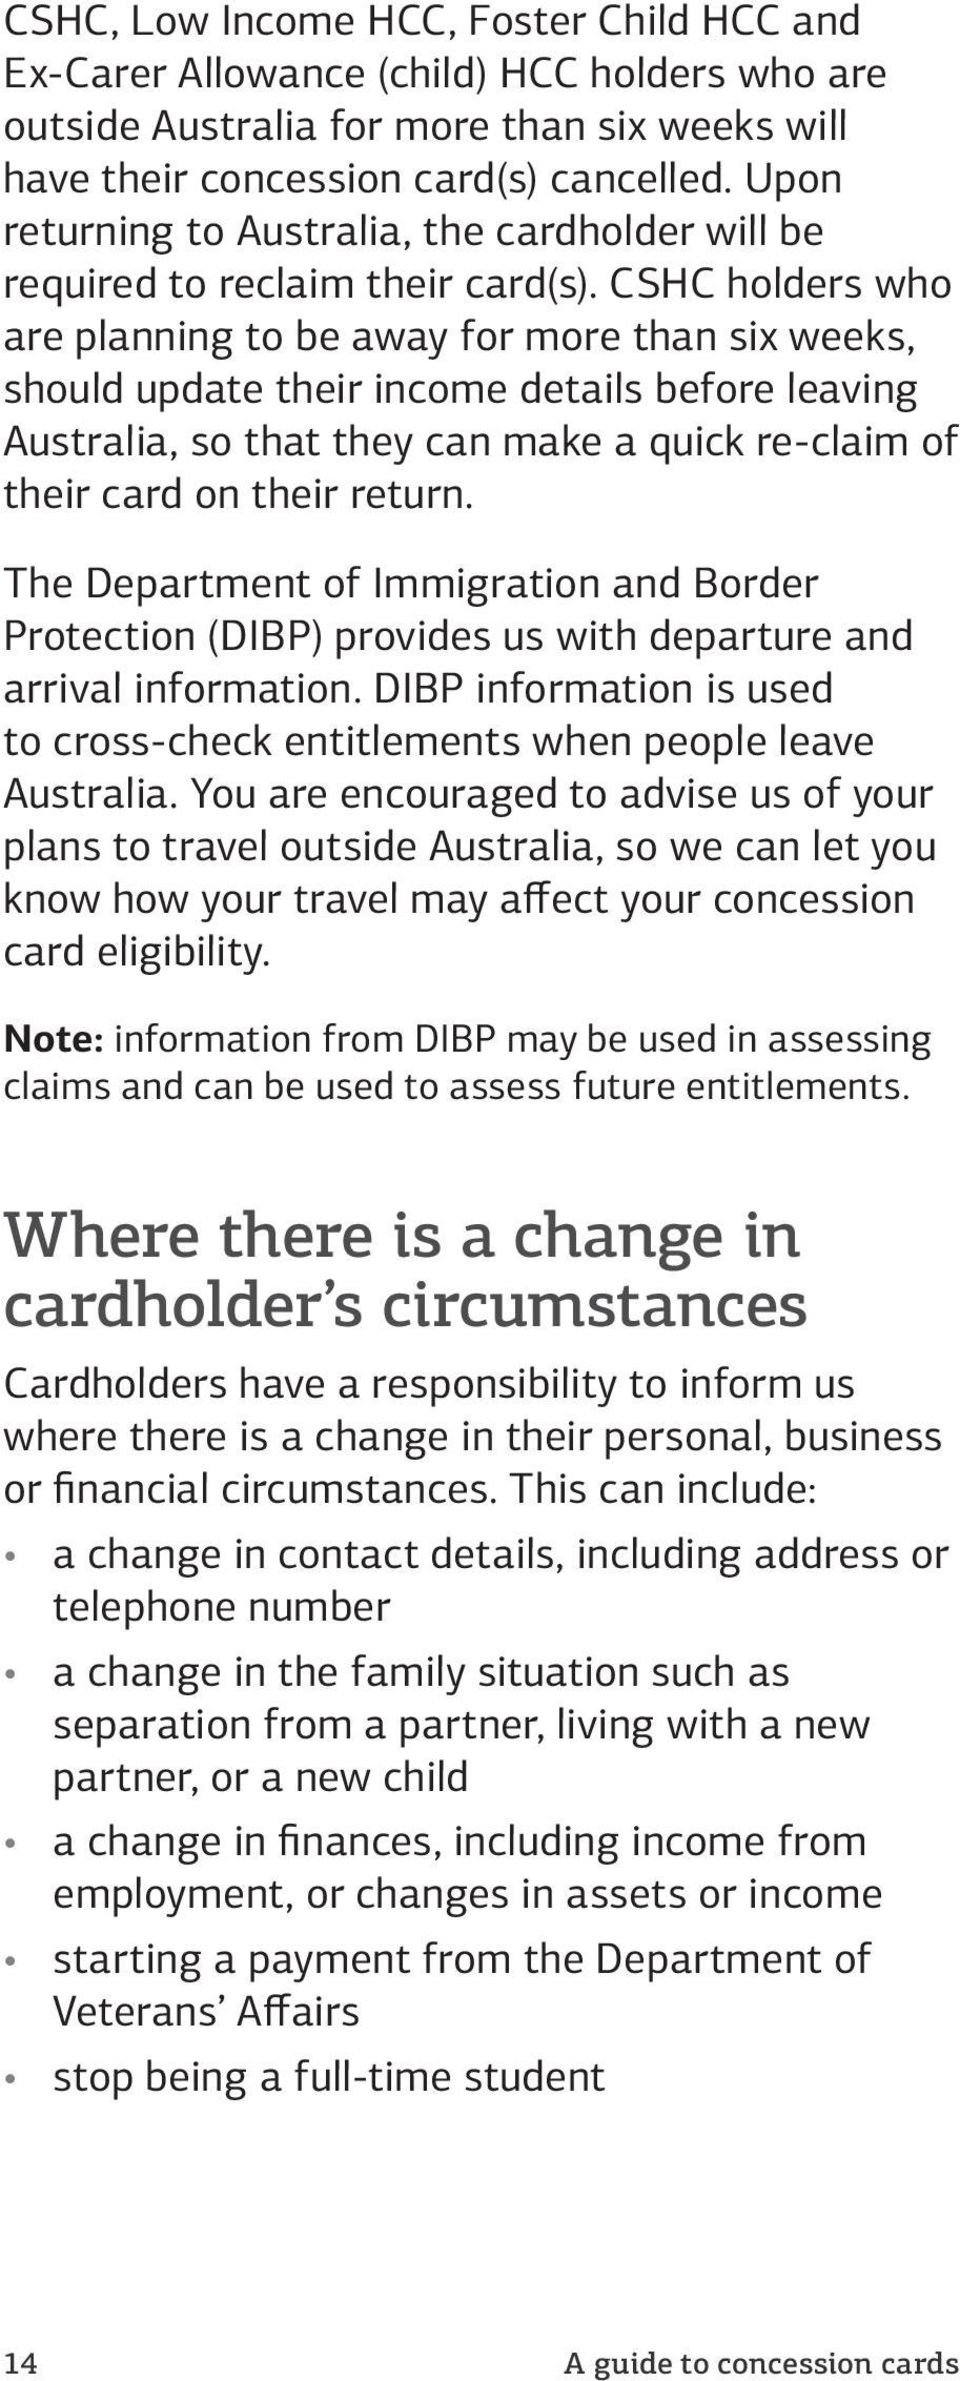 CSHC holders who are planning to be away for more than six weeks, should update their income details before leaving Australia, so that they can make a quick re-claim of their card on their return.